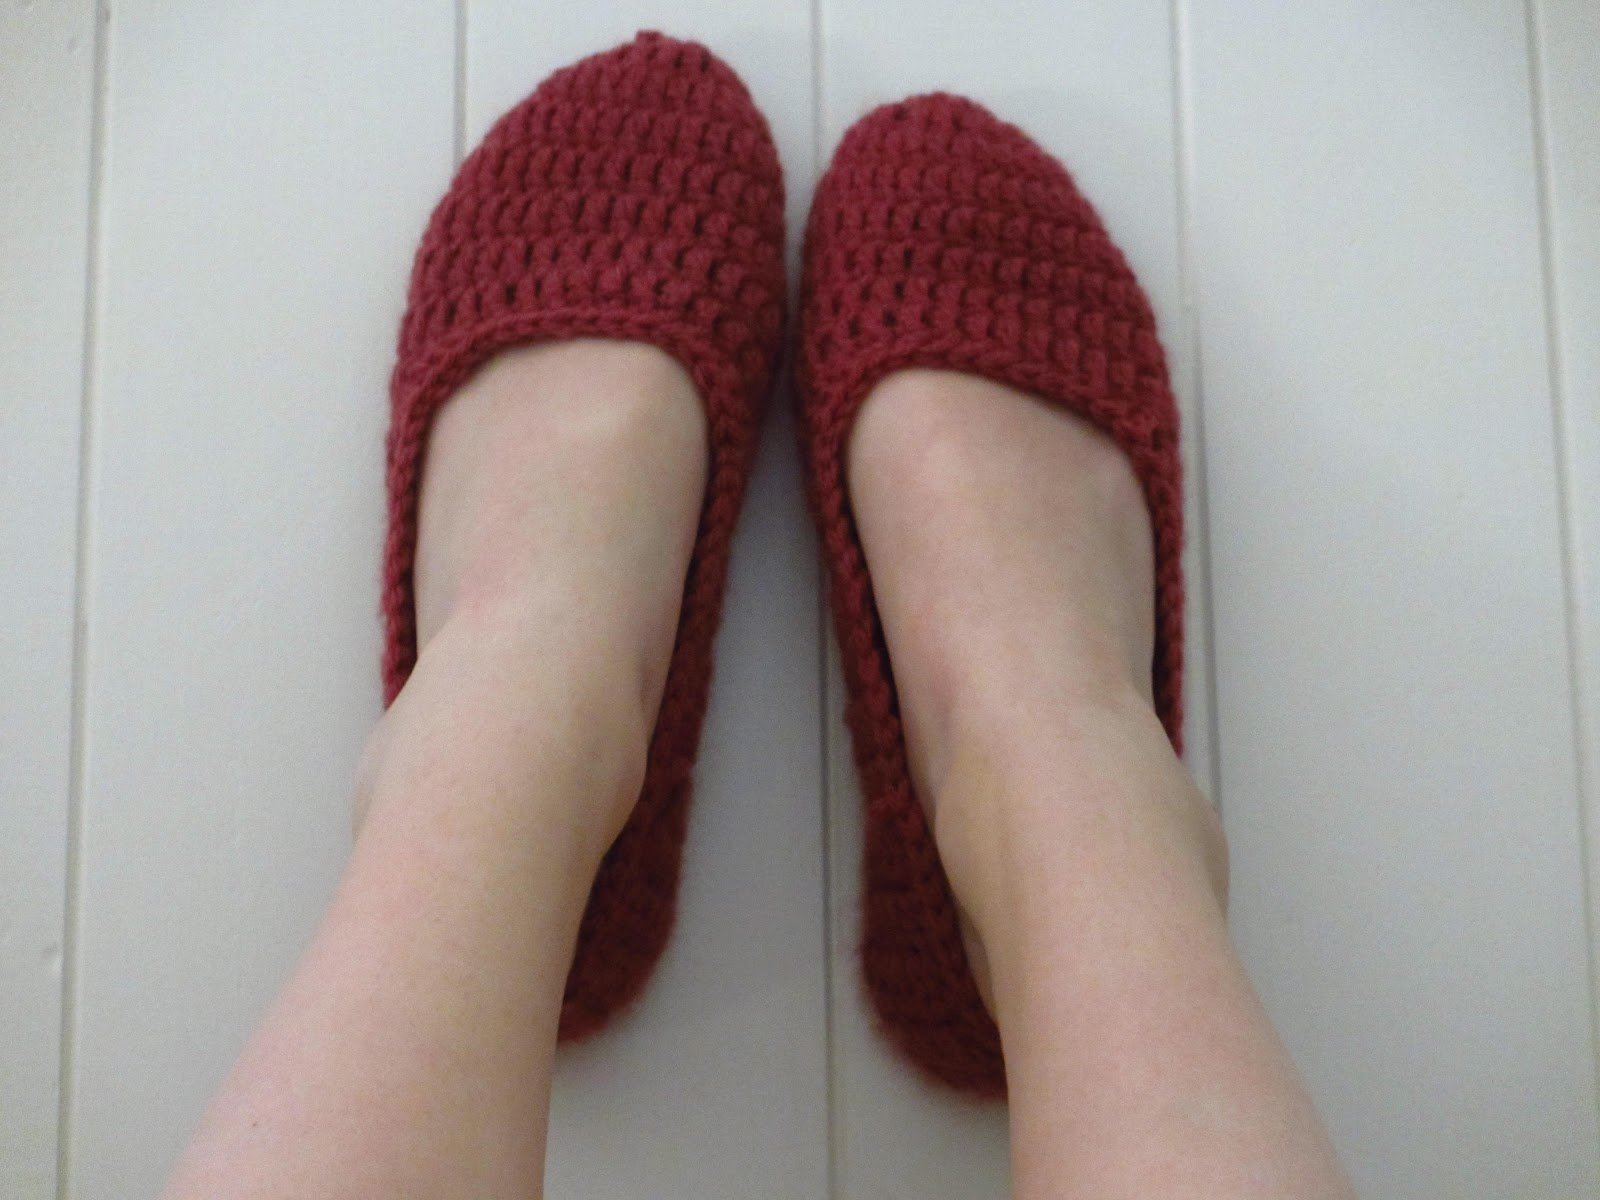 cddddffbcf557 FREE PATTERN: Women's House Slippers